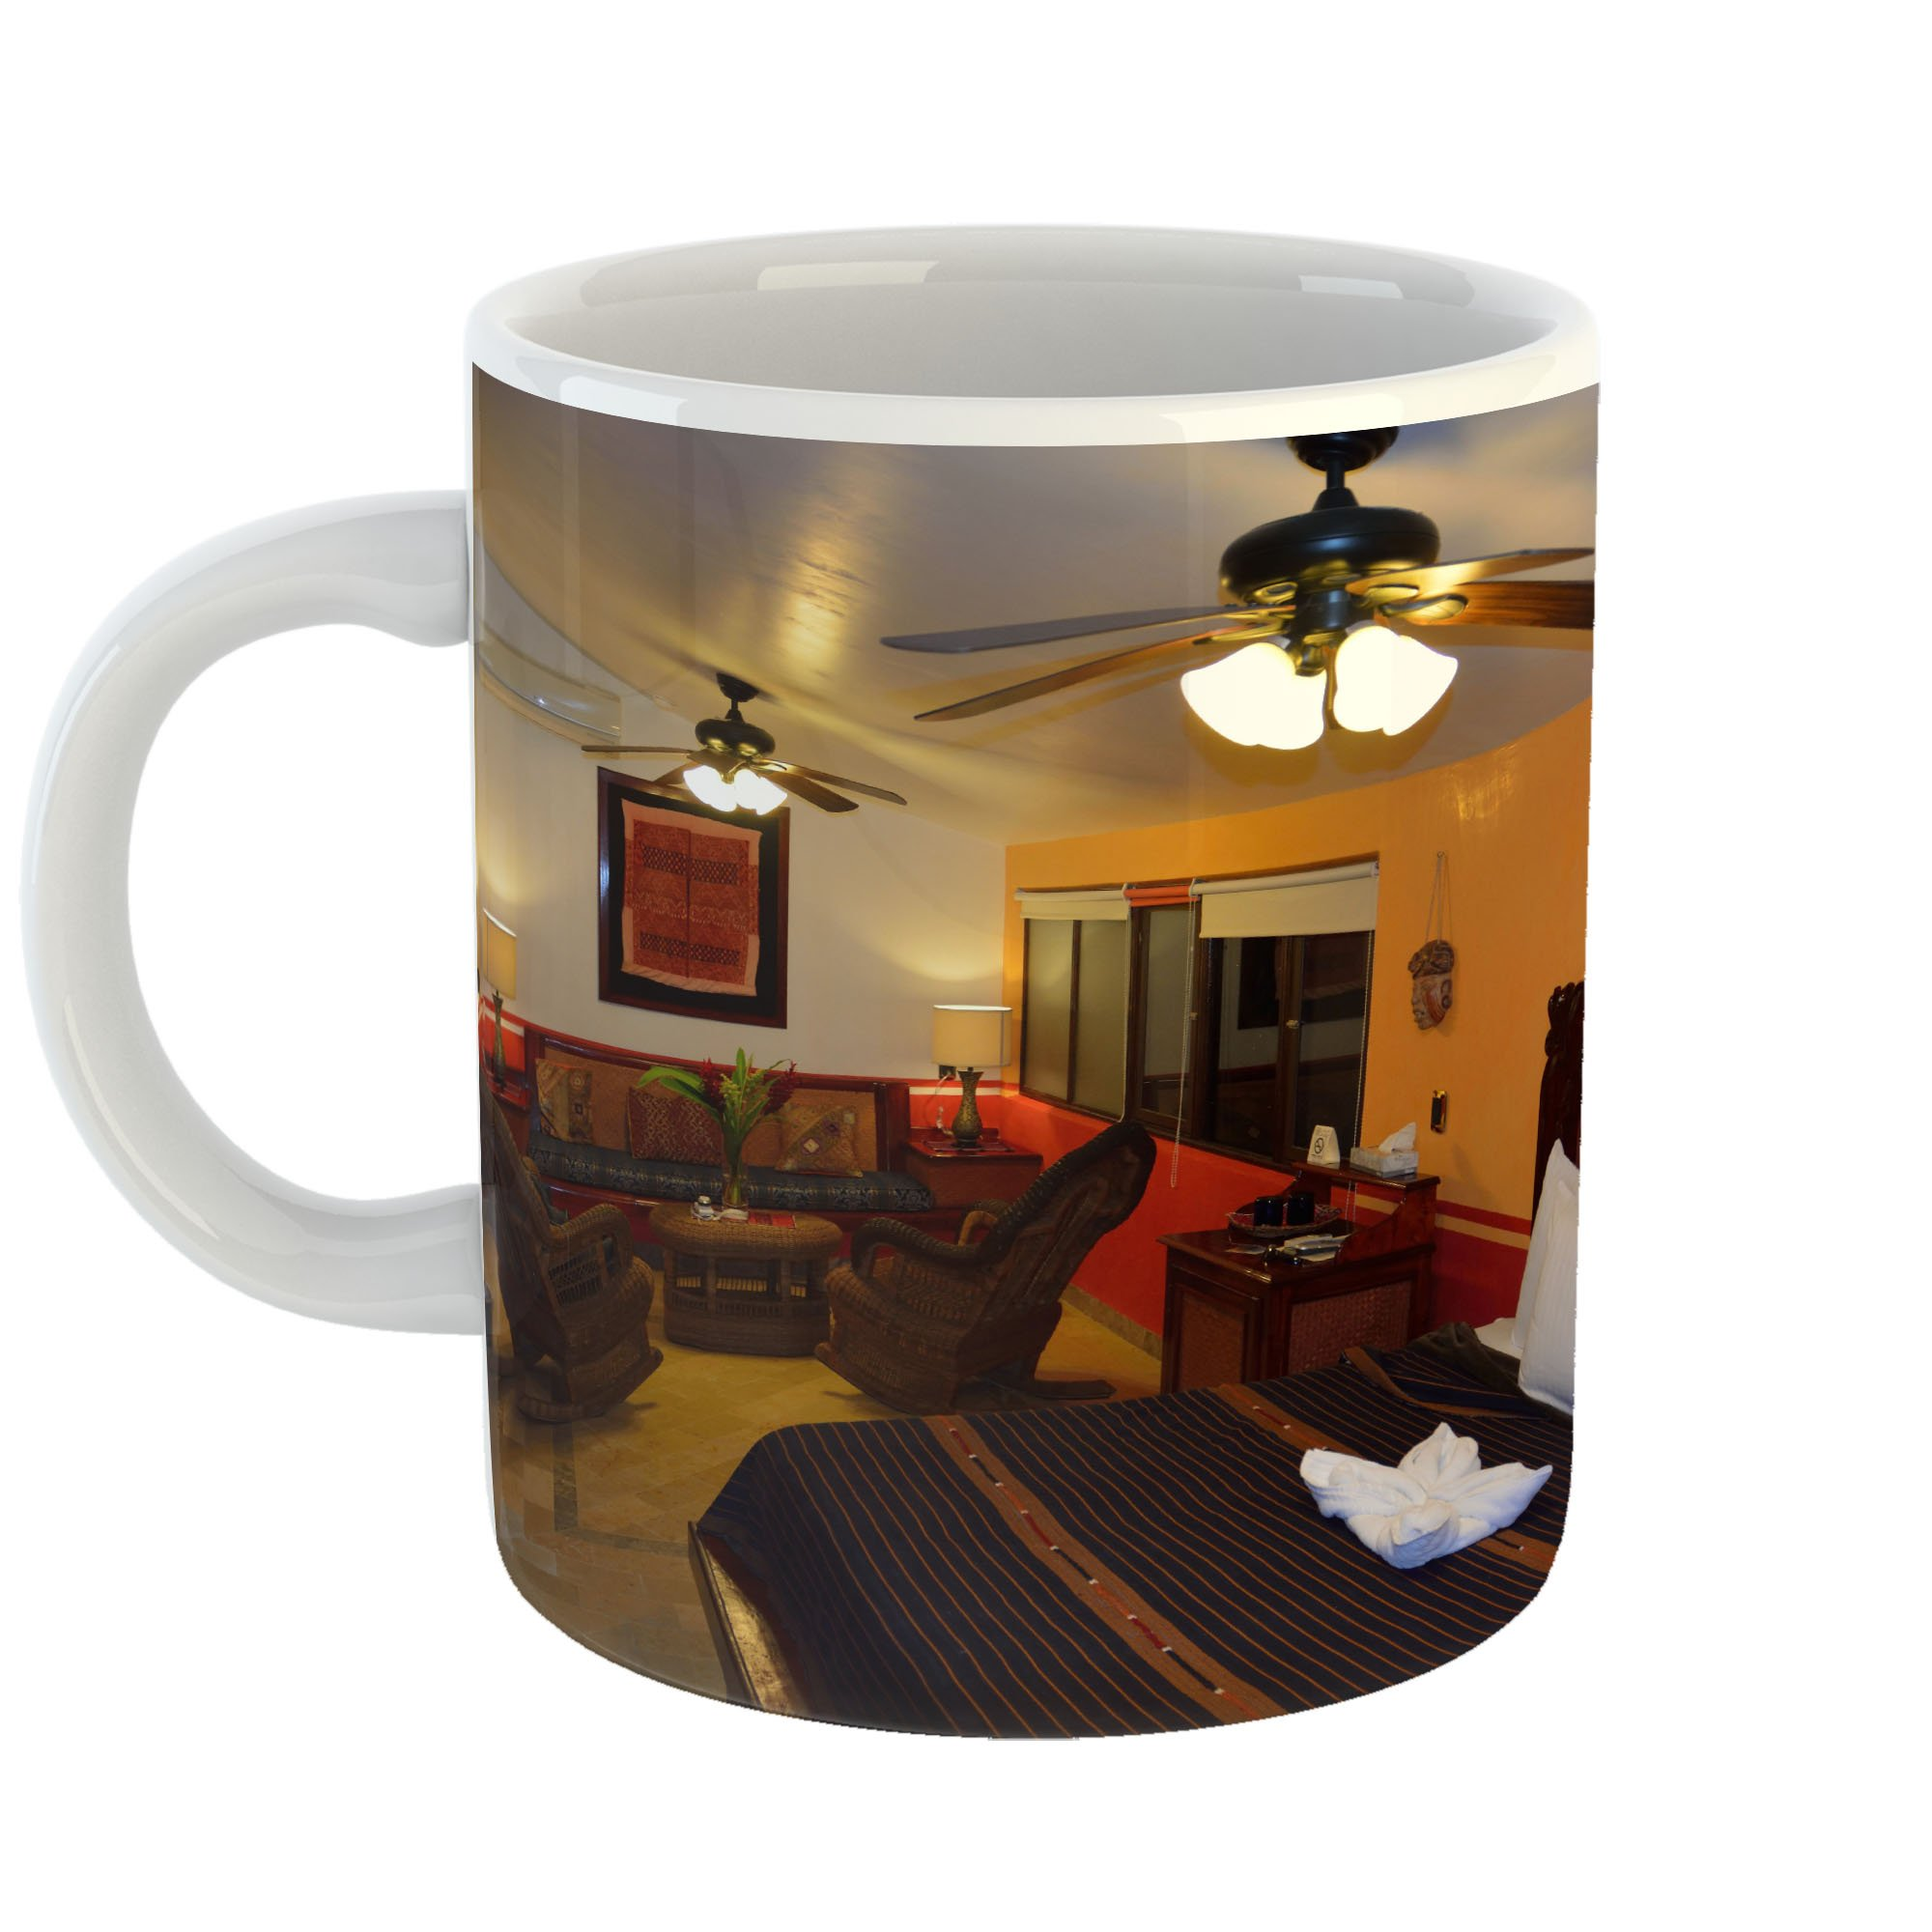 Westlake Art - Room Hotel - 11oz Coffee Cup Mug - Modern Picture Photography Artwork Home Office Birthday Gift - 11 Ounce (CD5F-77231)